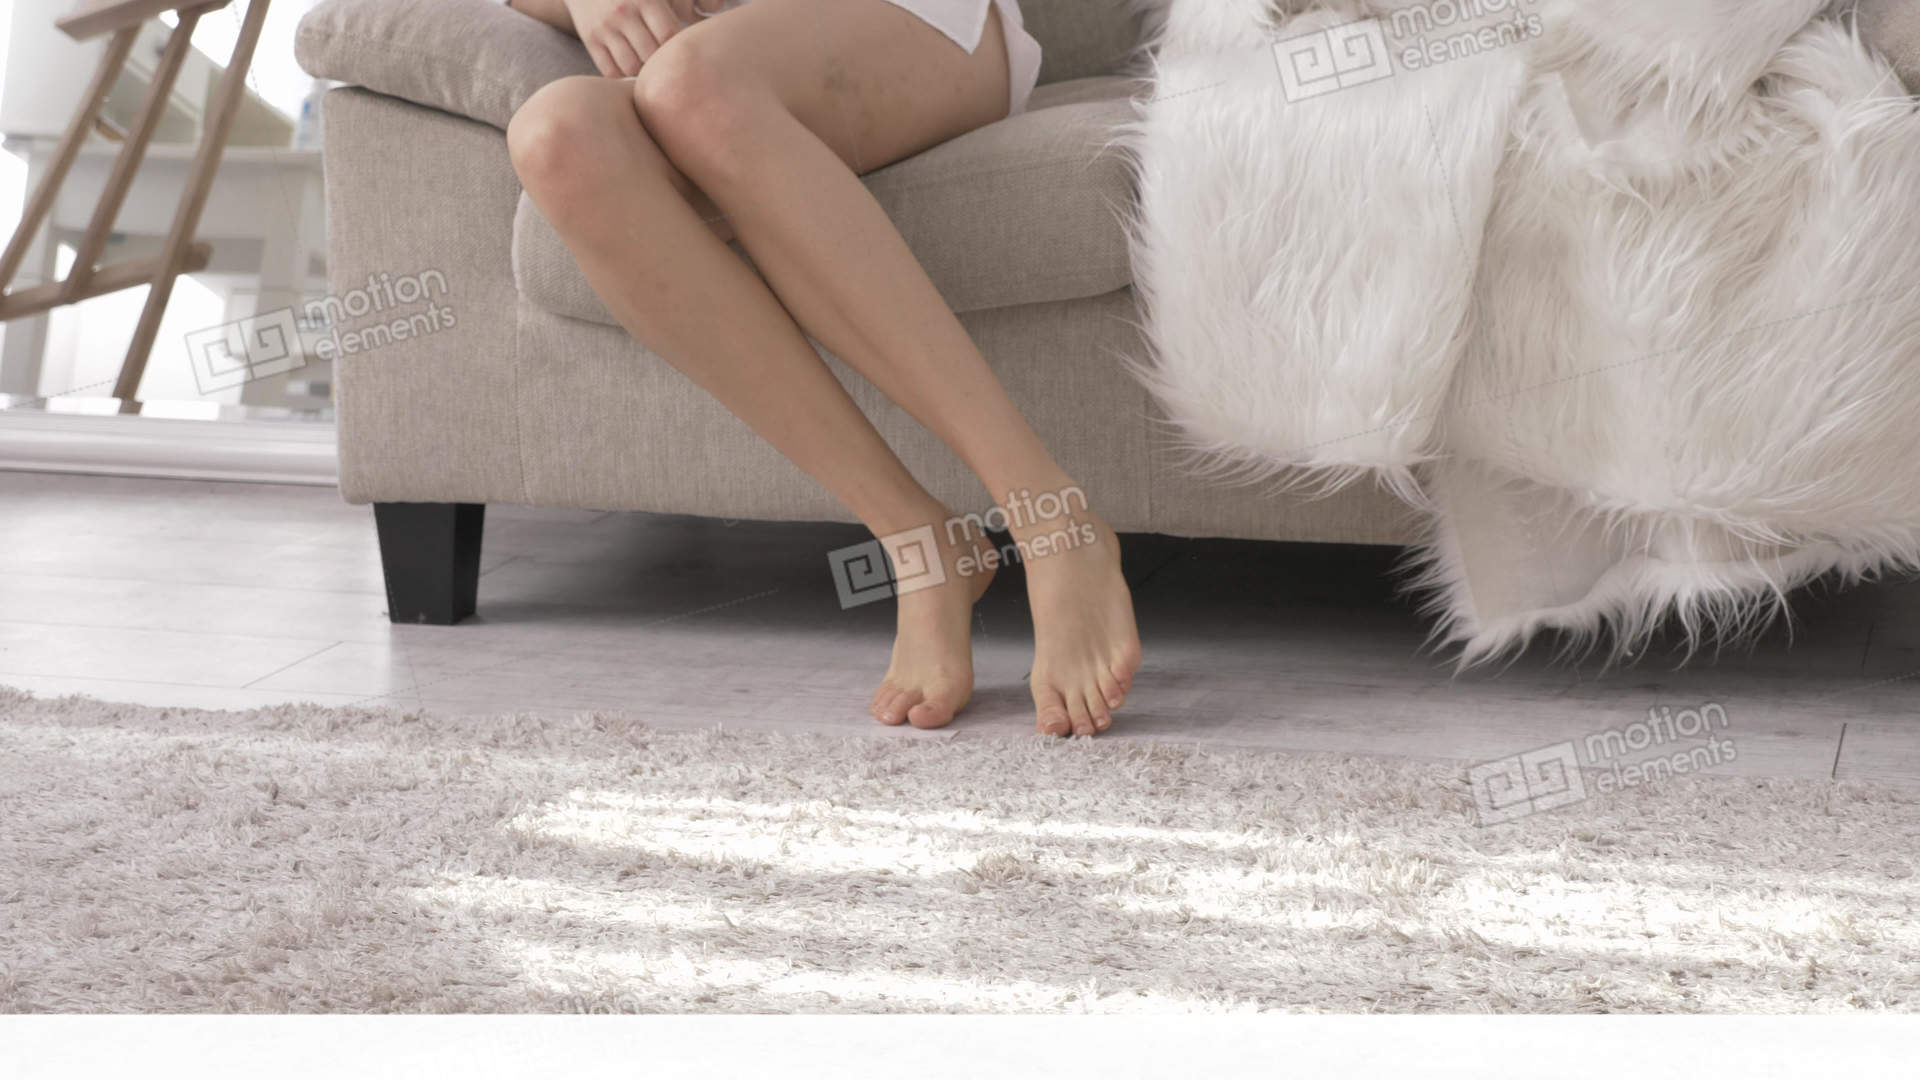 Sexy Female Caucasian Feet Bare Naked Legs Walking On Stock Video Footage